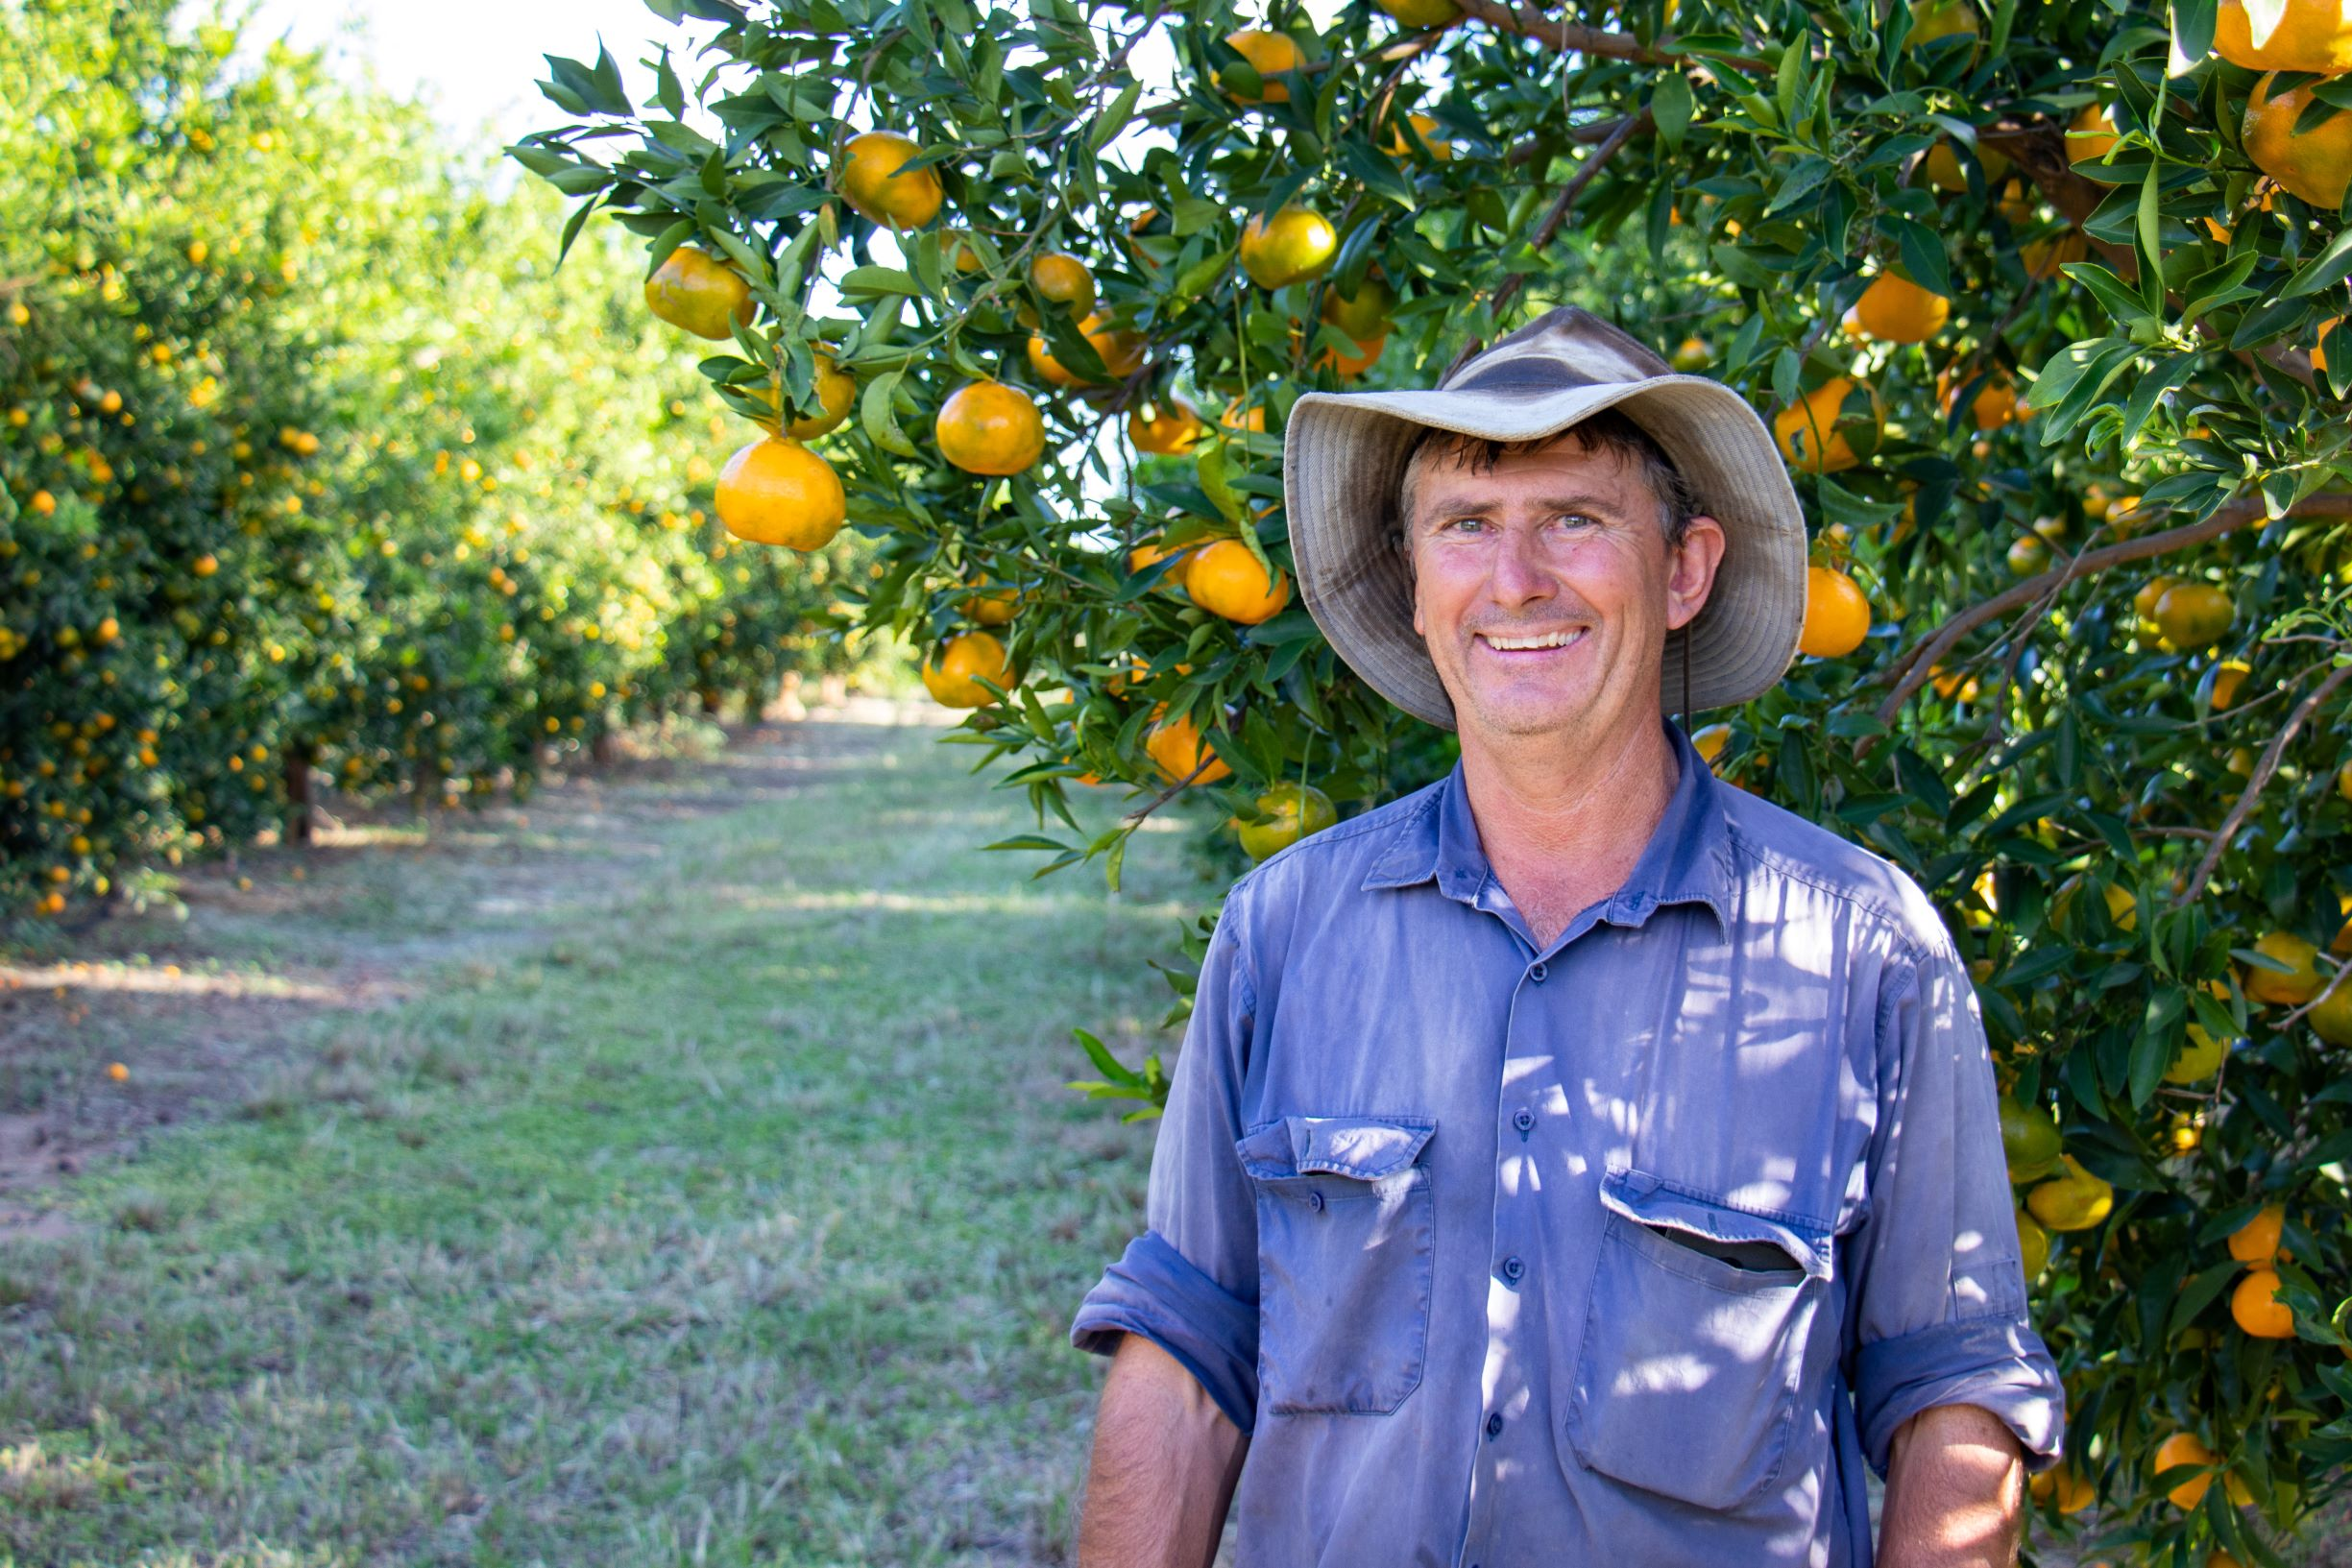 Imperial Mandarin Grower Dennis Smith